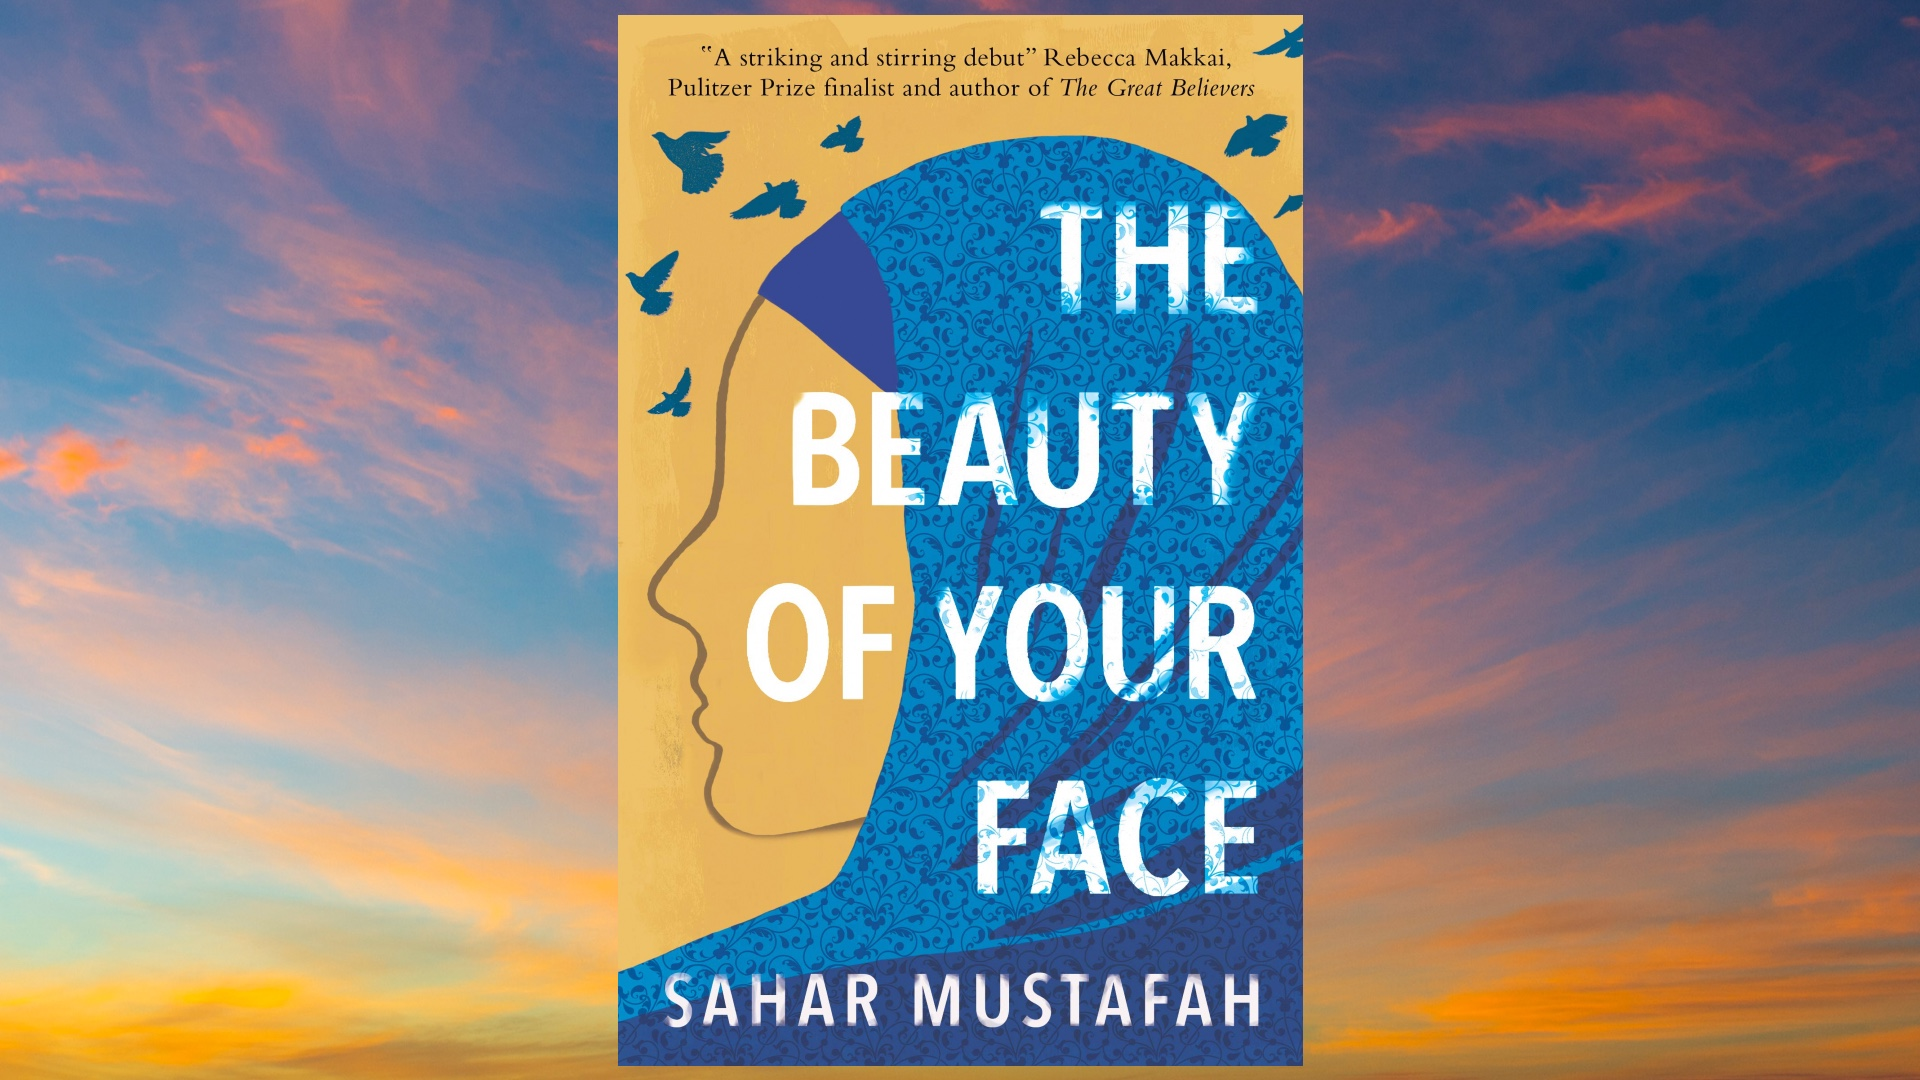 A Palestinian-American woman wrestles with faith, loss, and identity before coming face-to-face with a school shooter in Sahar Mustafah's searing debut